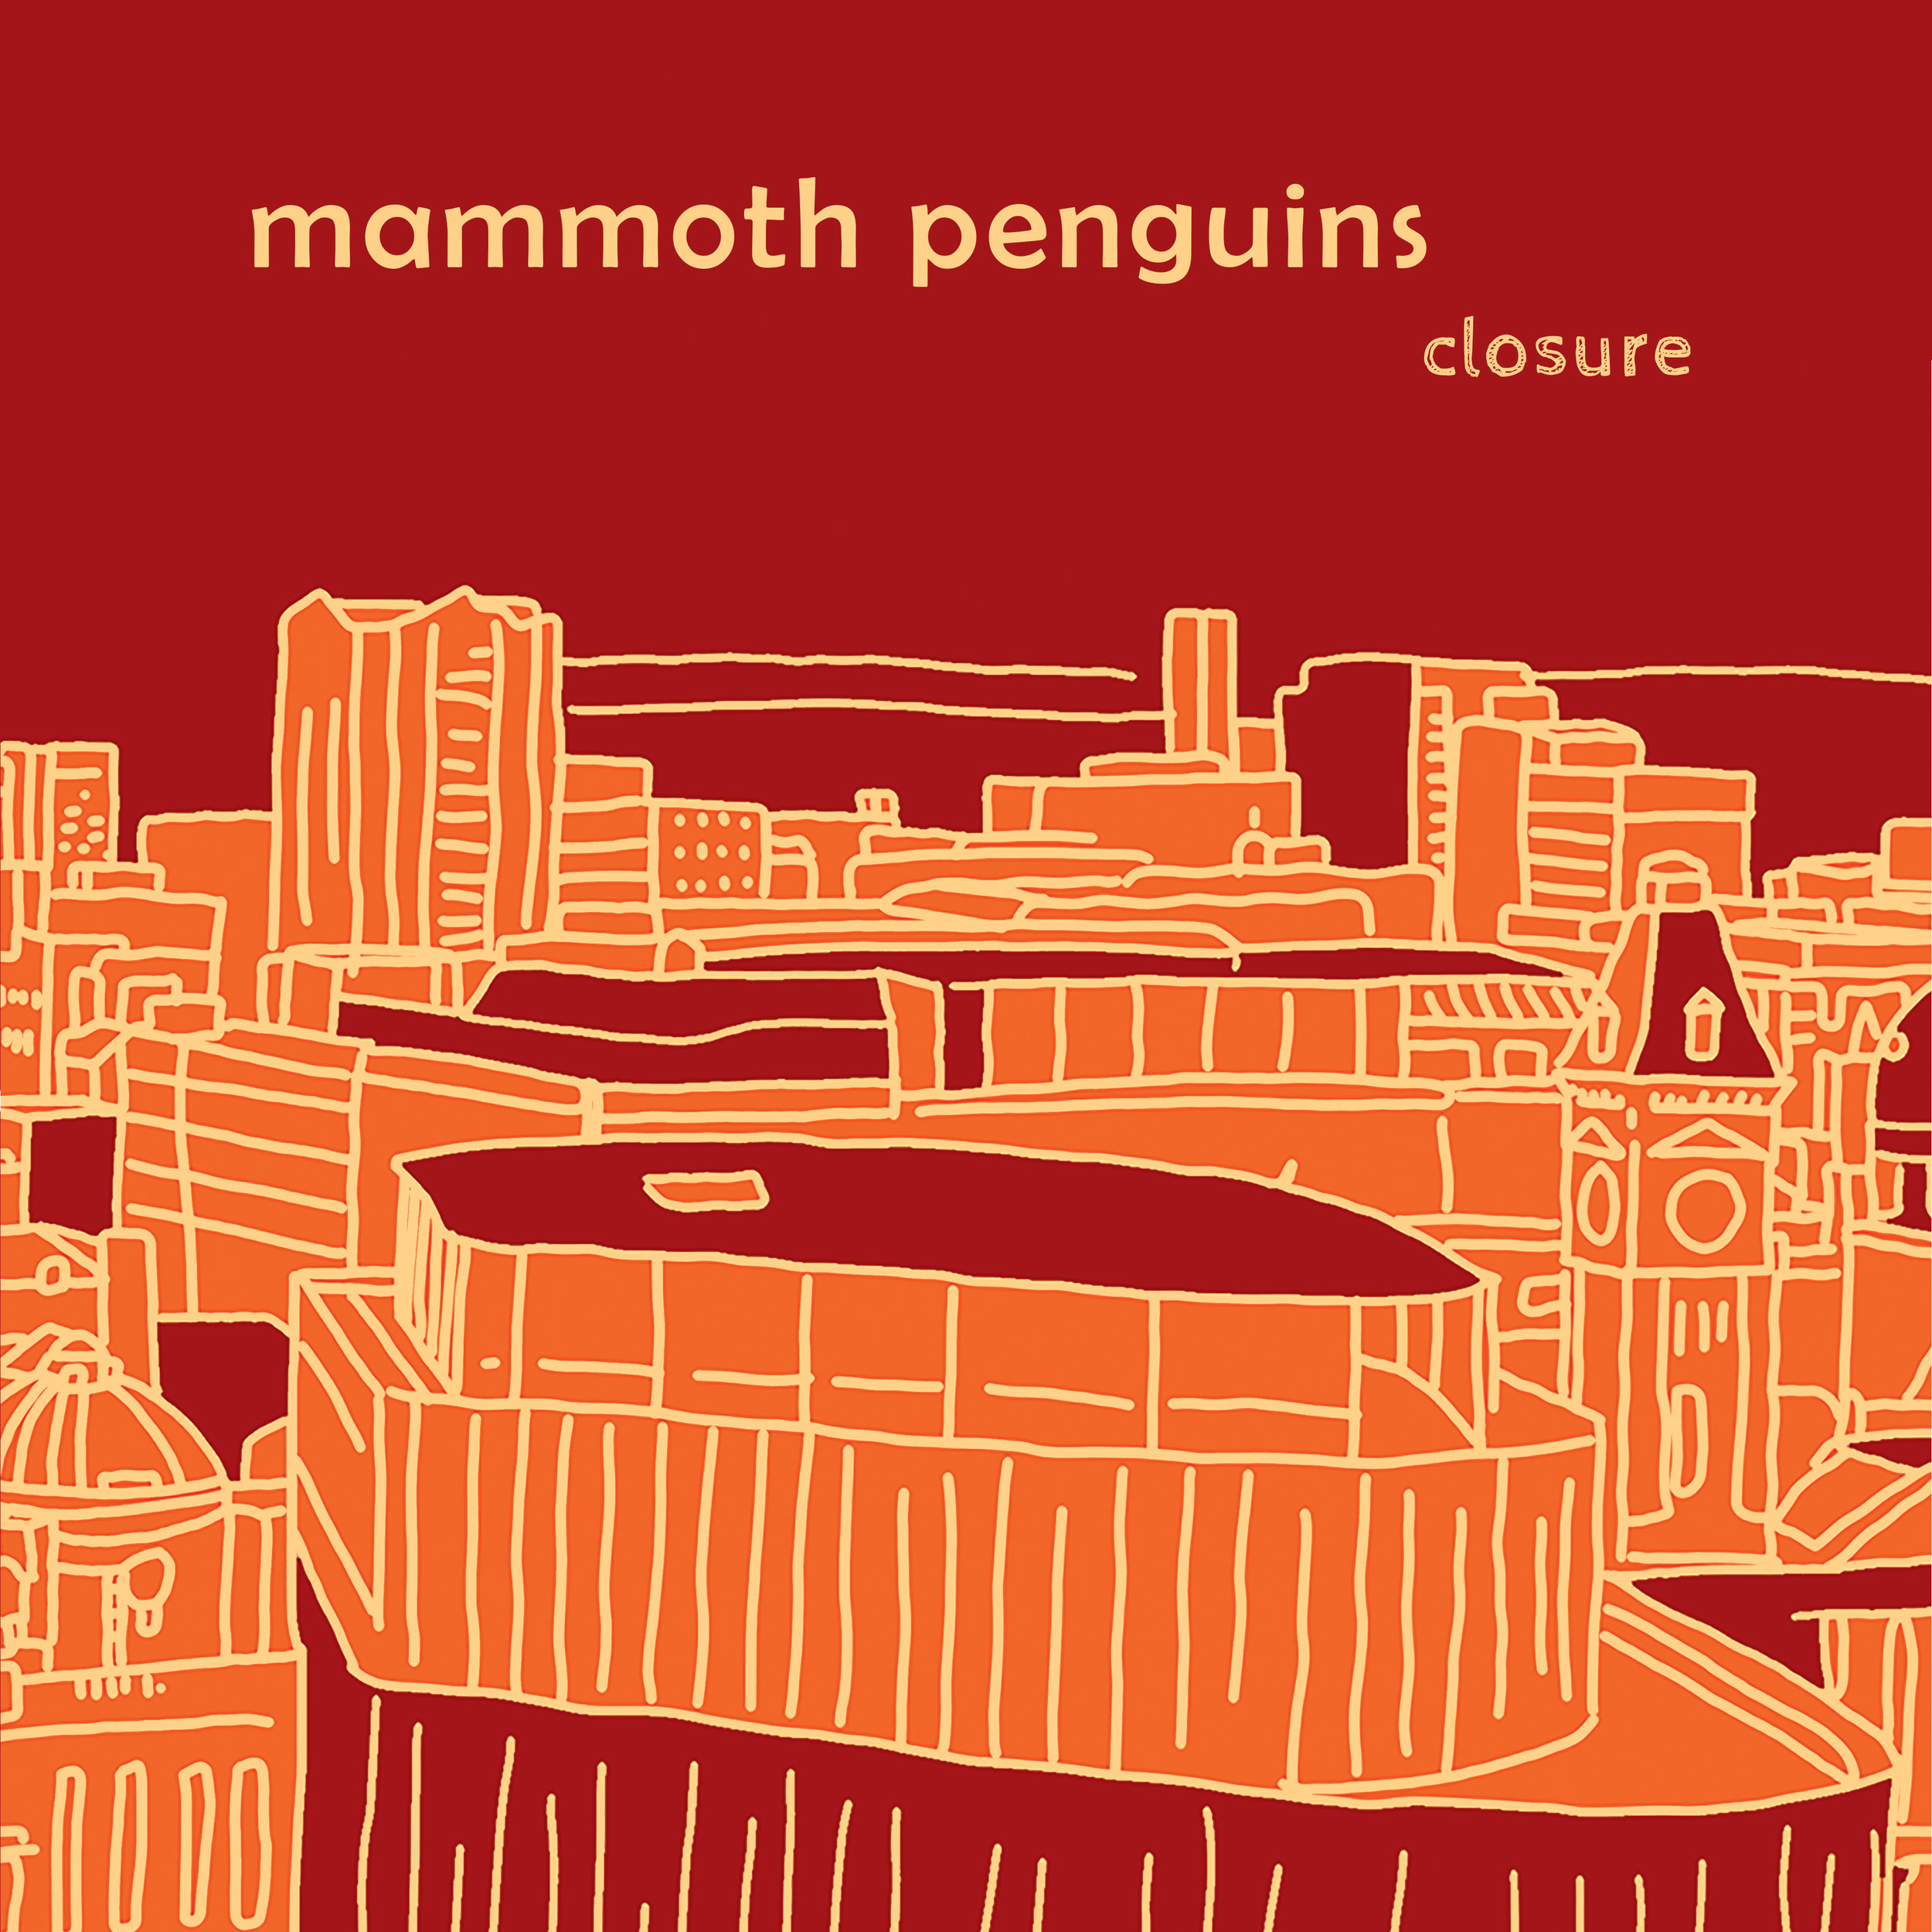 Mammoth Penguins - Closure.jpg